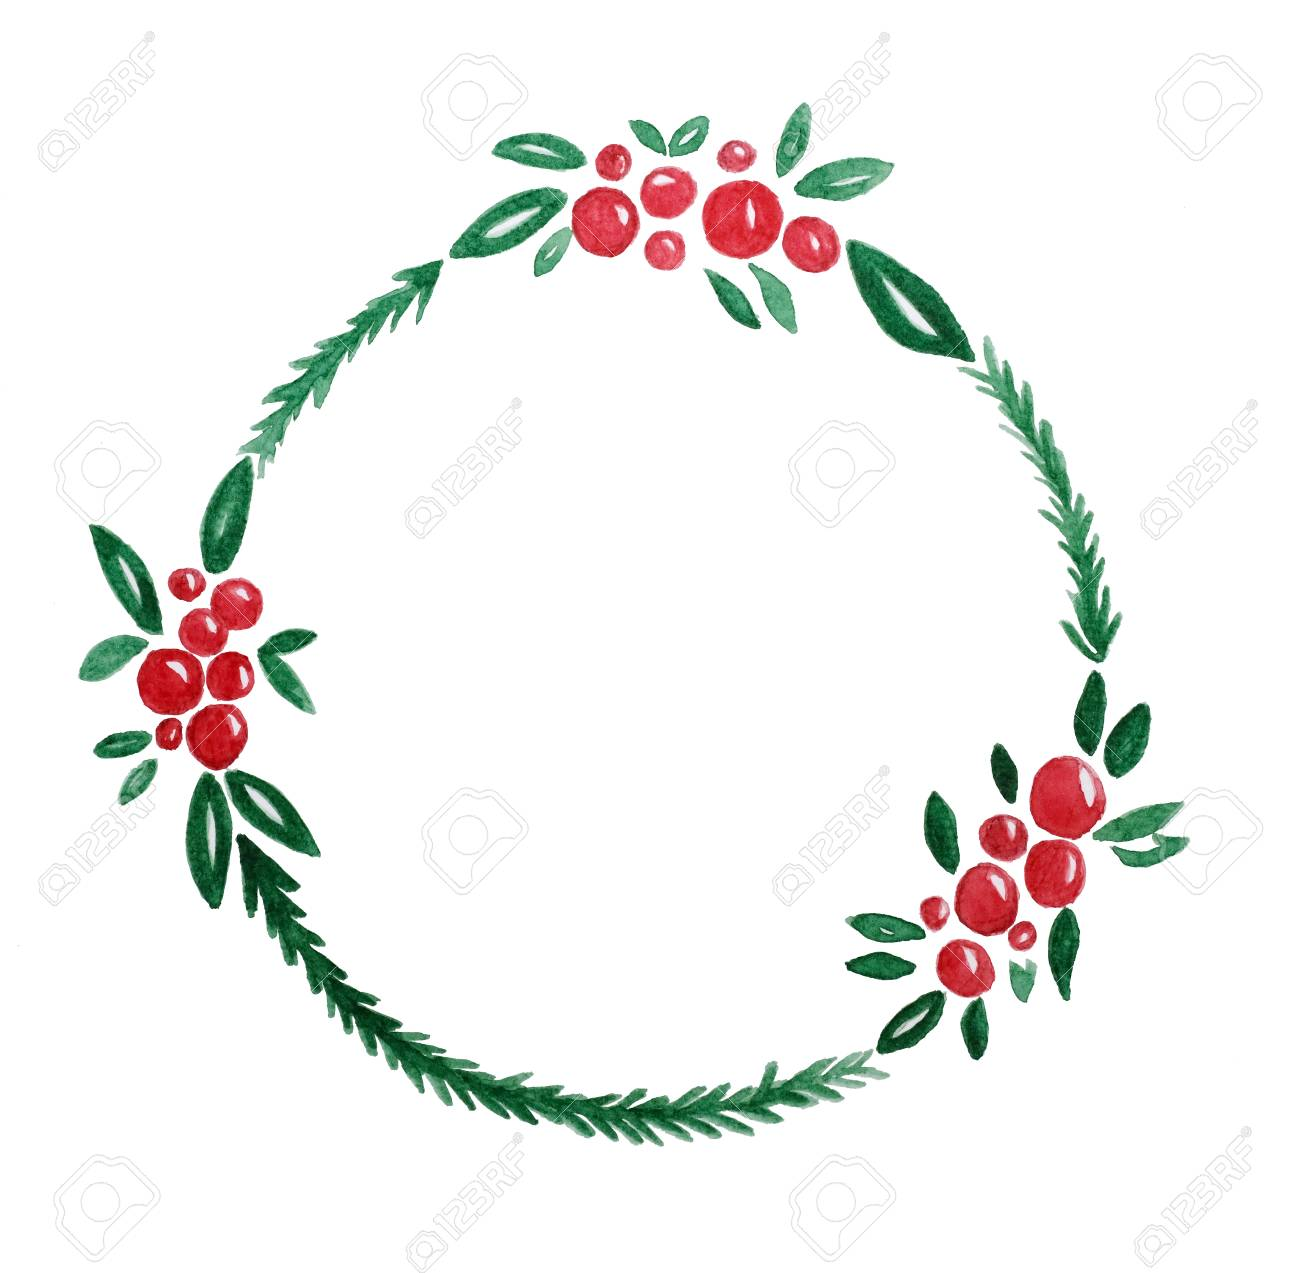 Drawings Of Christmas Wreaths.Christmas Wreath Watercolor Drawing On White Paper Background